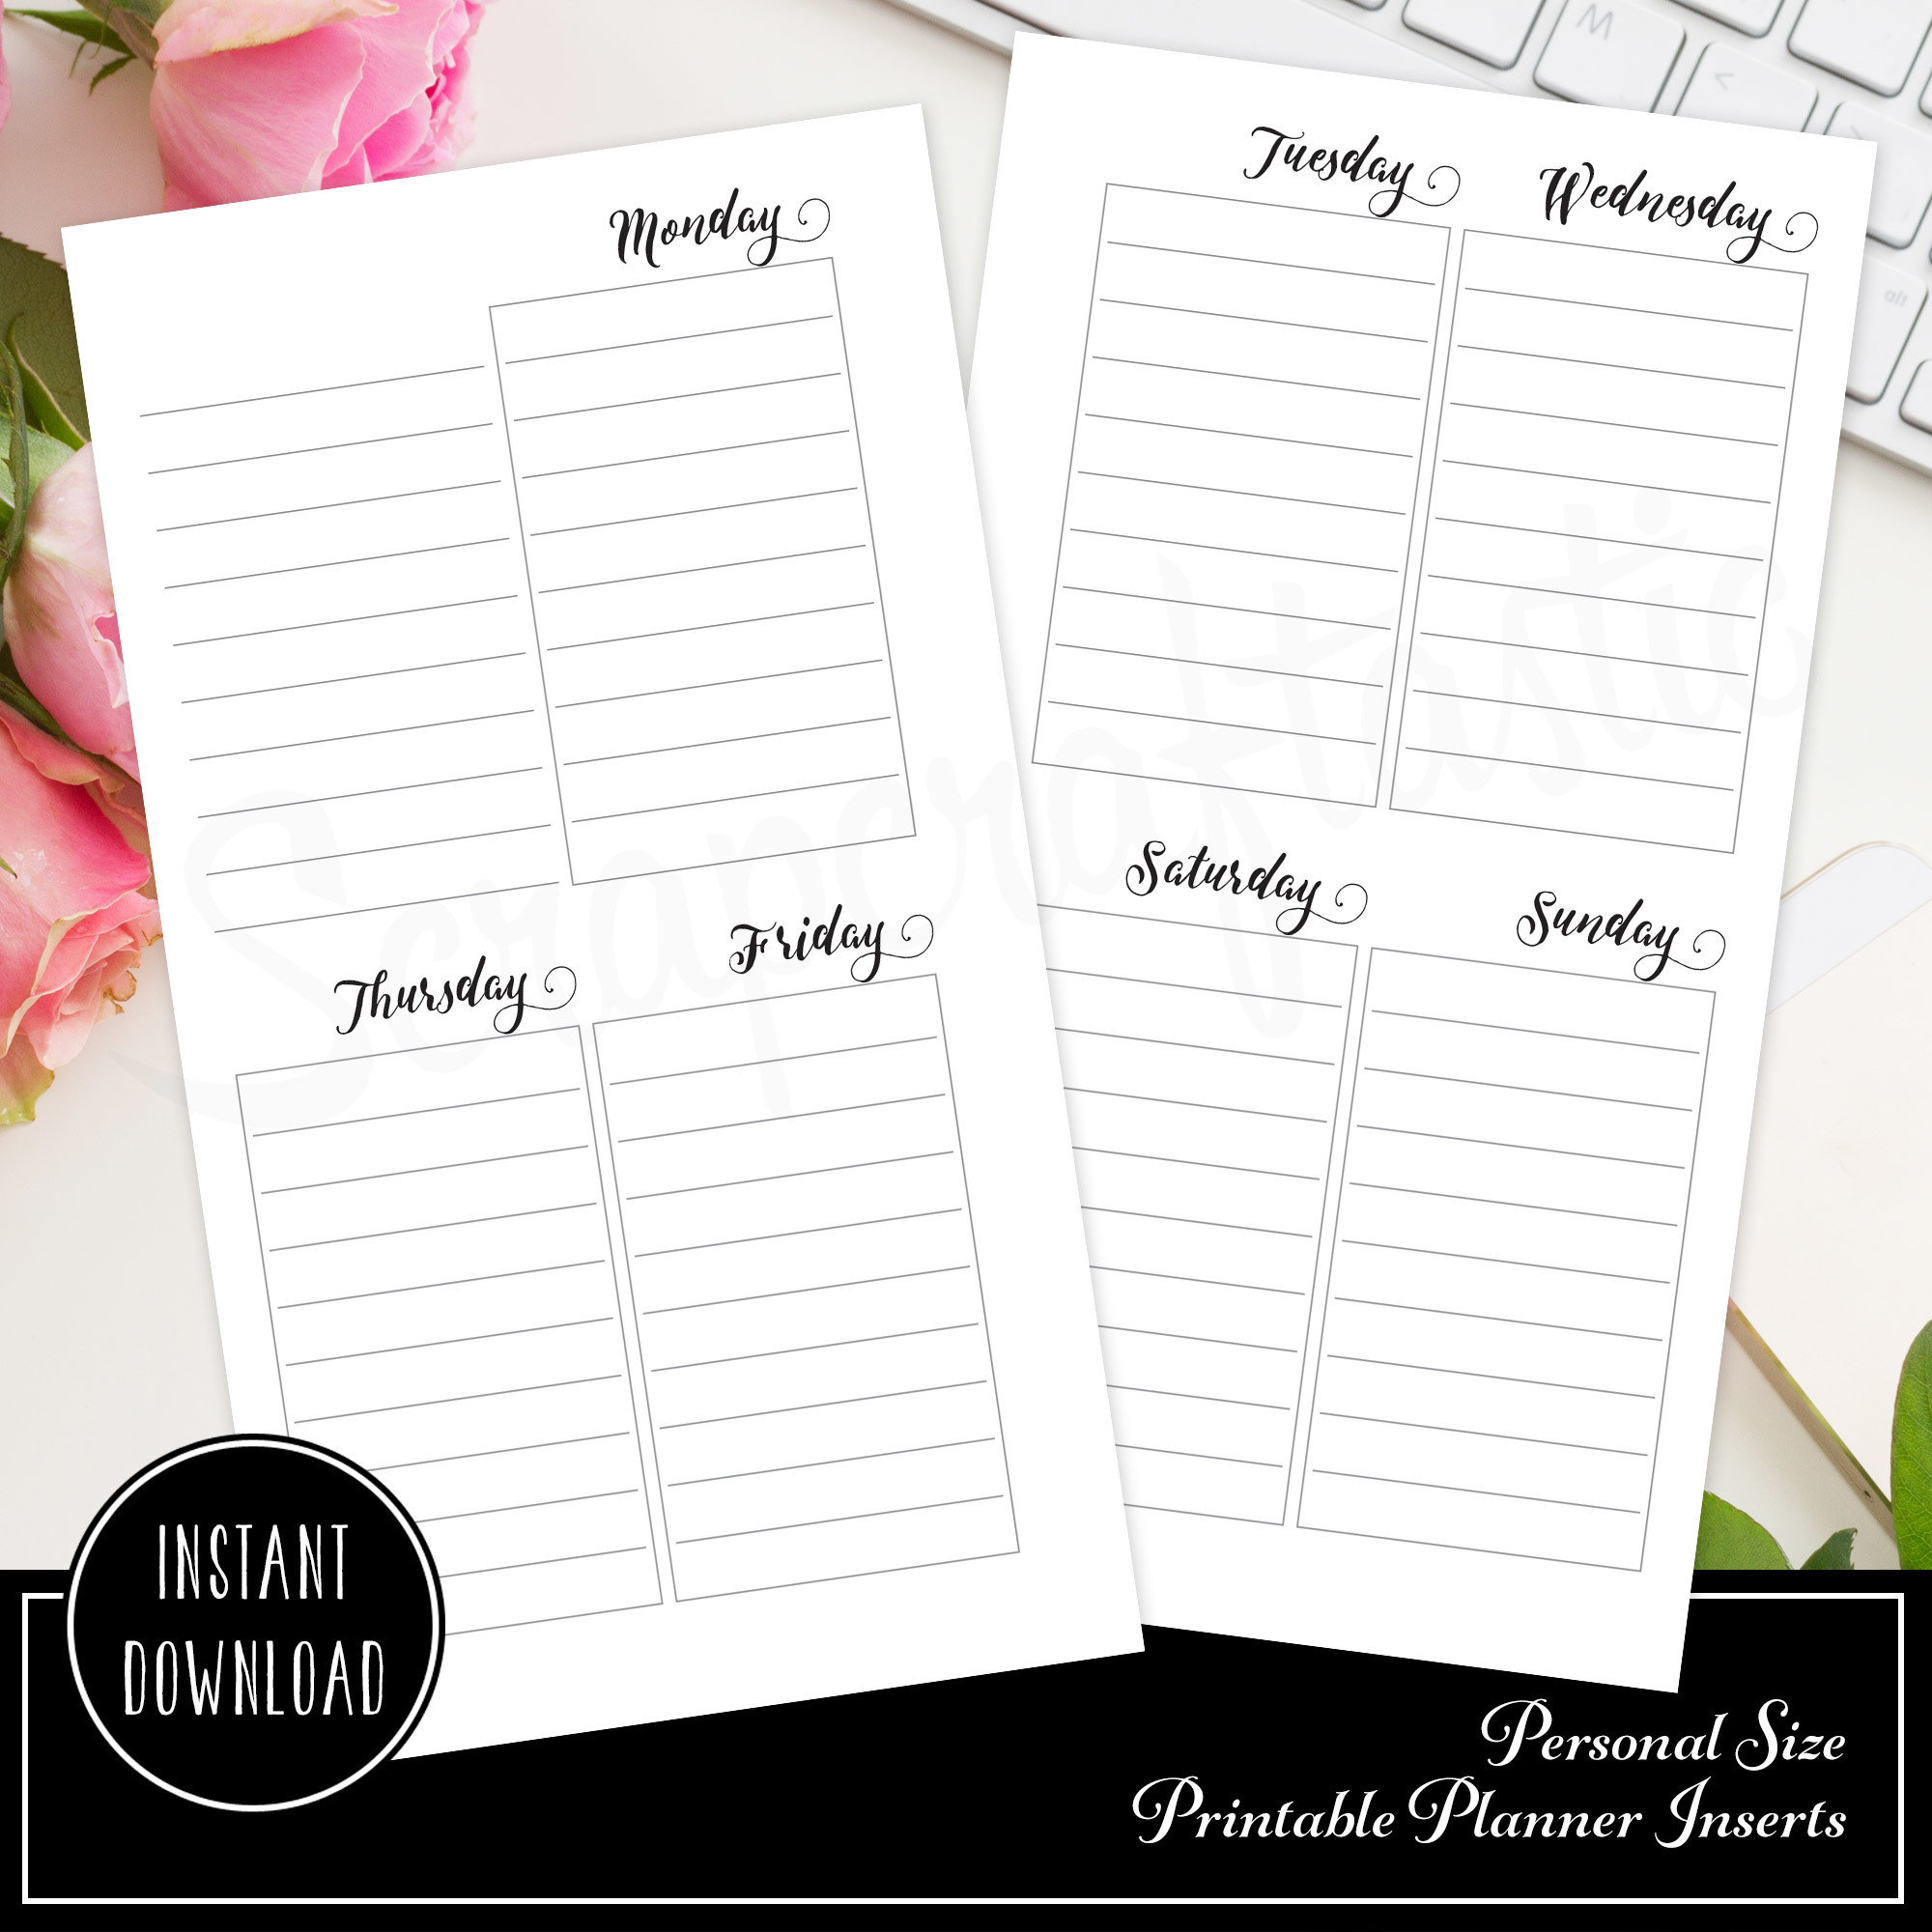 Oversized Lined Full Box Printable Planner Insert Refill Undated WO2P Personal Size - Horizontal Days 00223